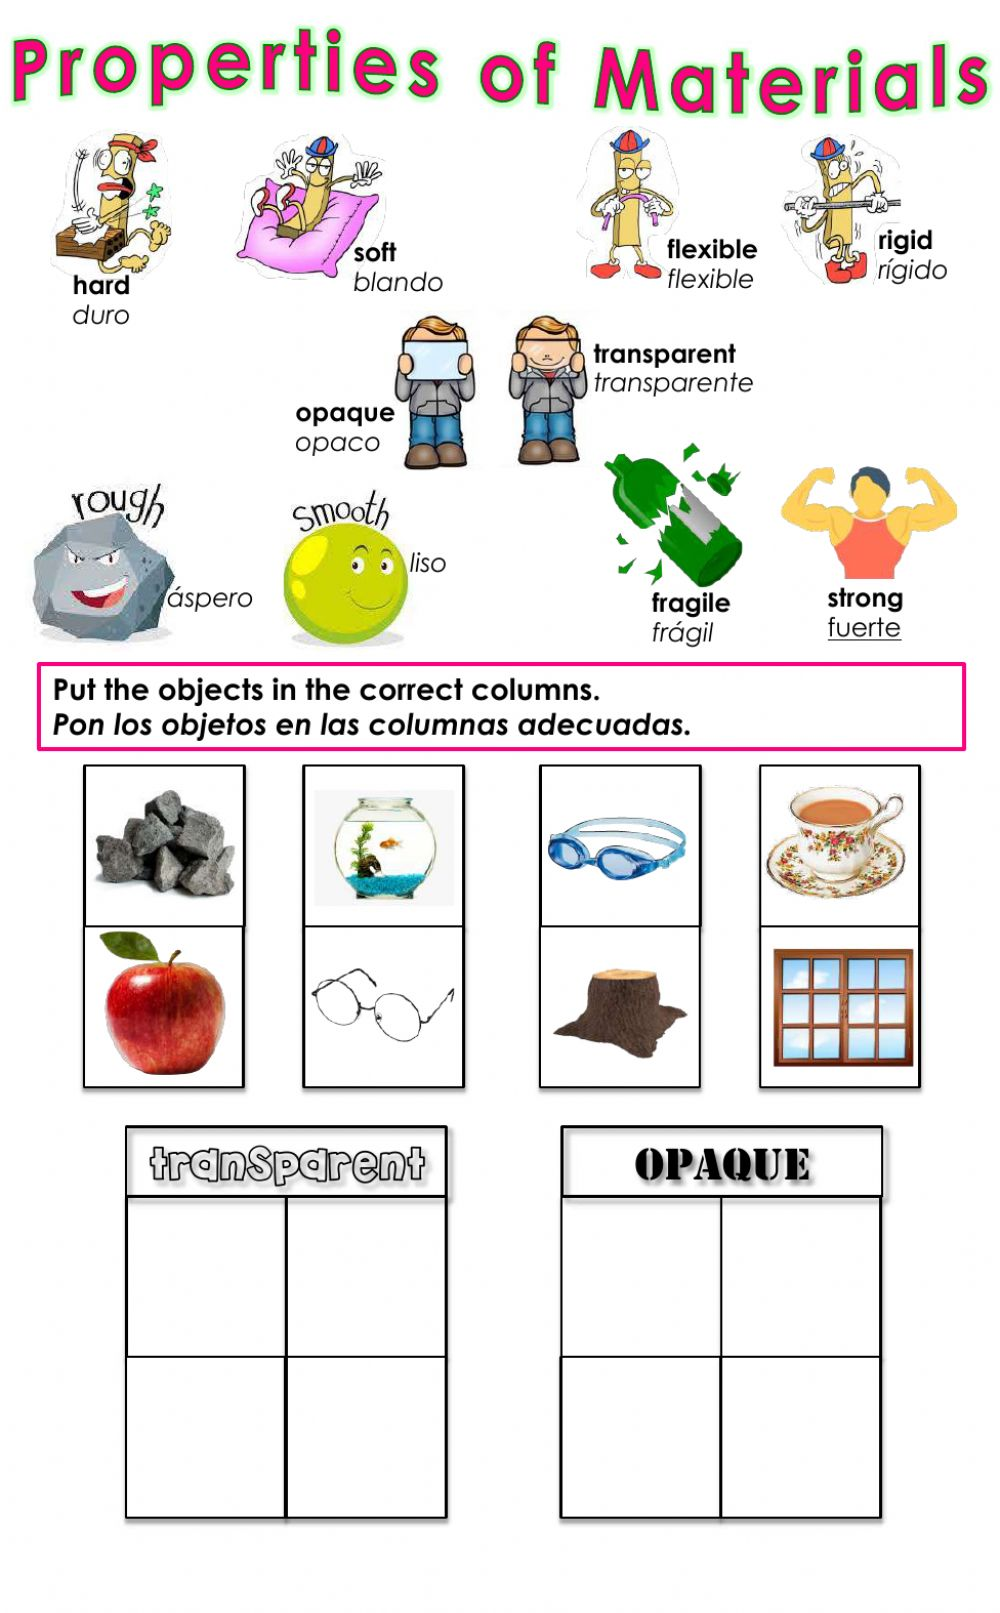 hight resolution of Properties of Materials - Transparent or Opaque? worksheet